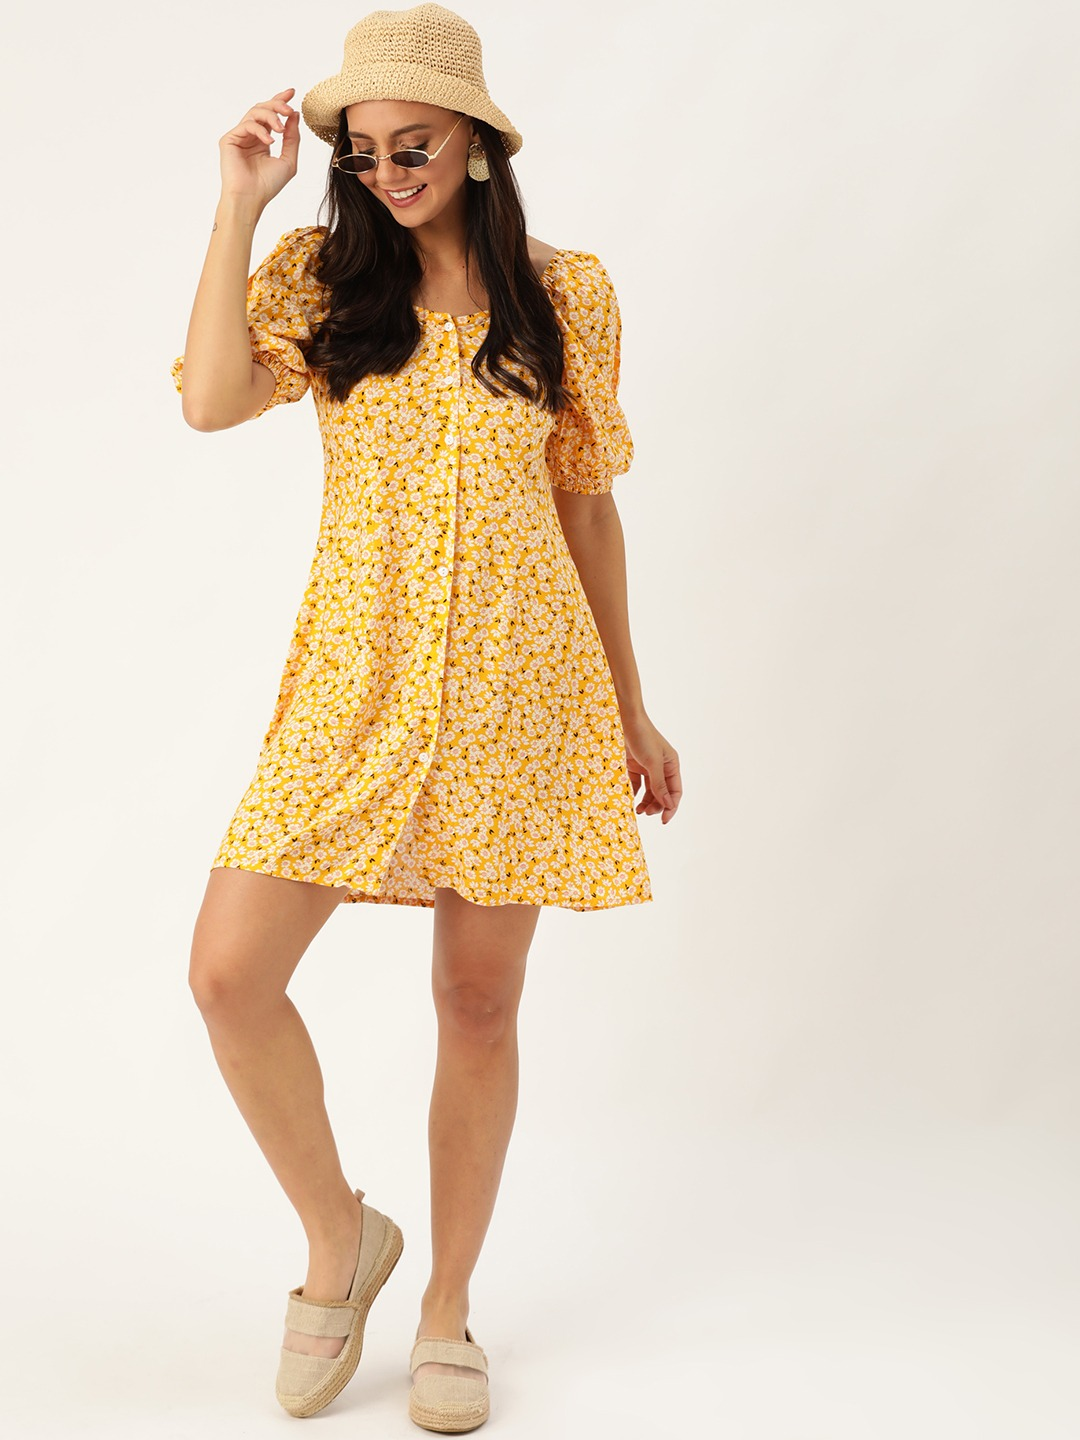 Dresses-Spring Sunshine Floral Dress2